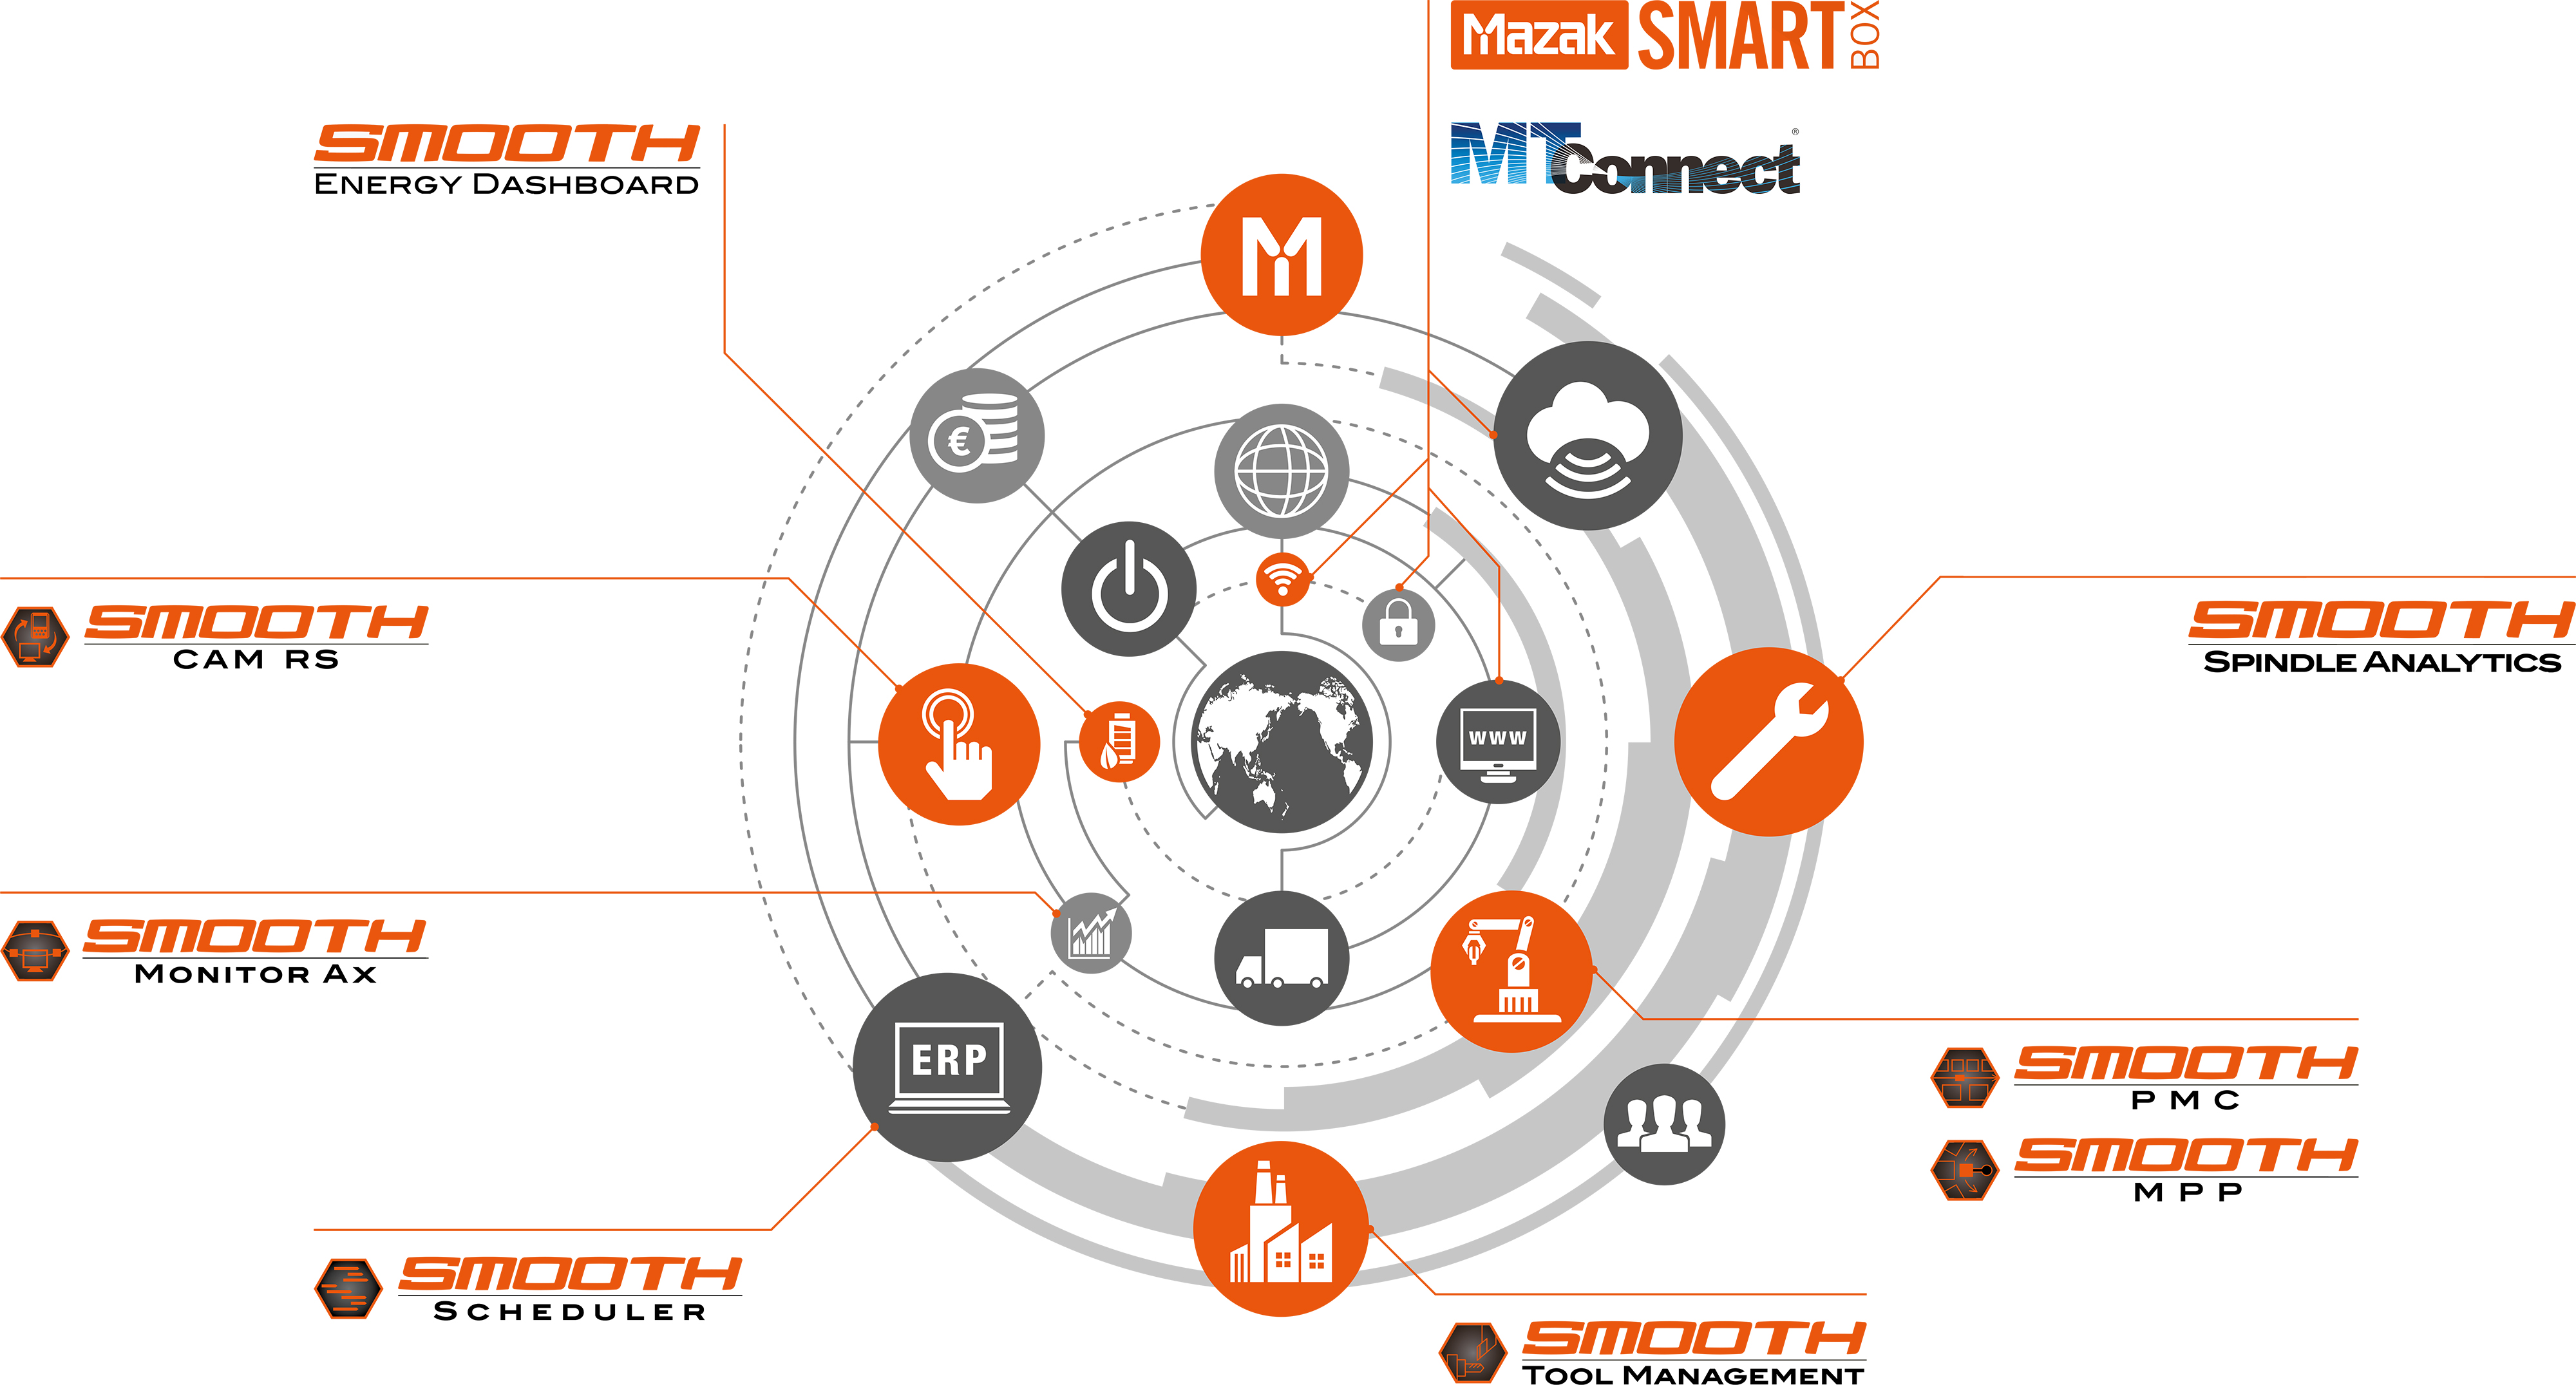 Industry 4.0 SMOOTH technology